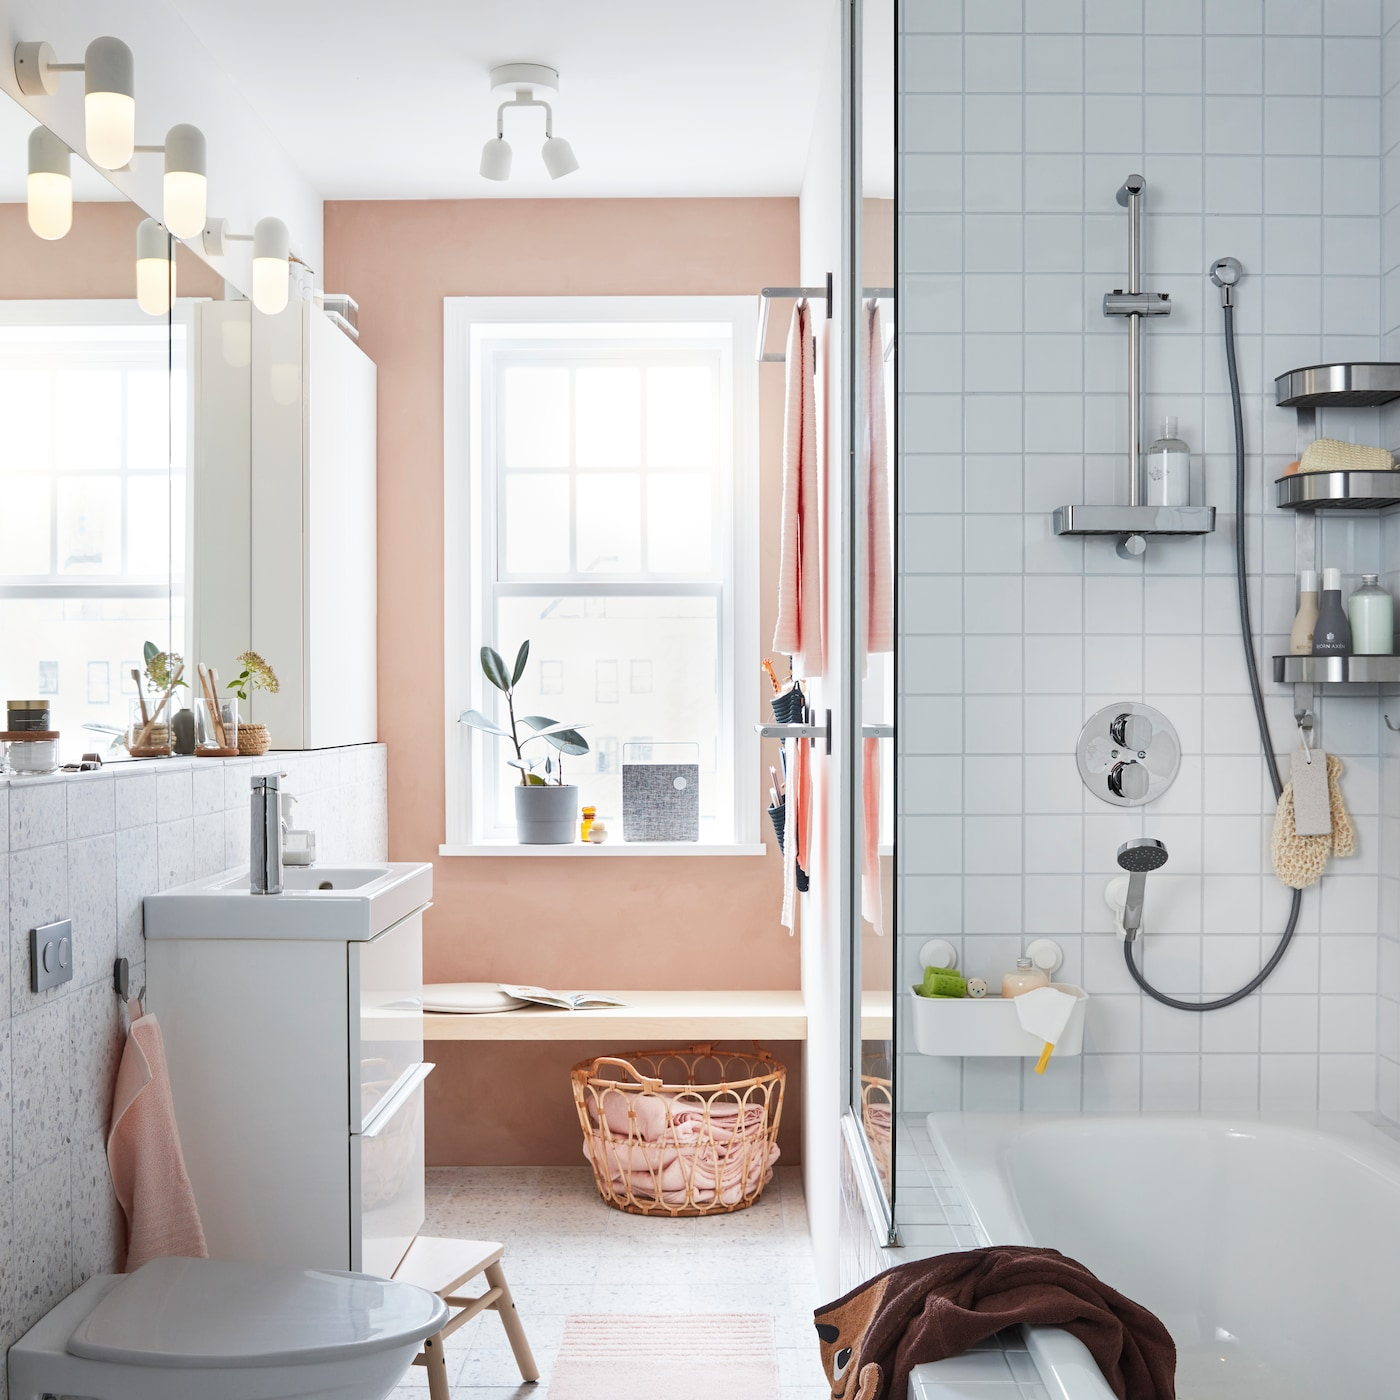 Bathroom Ideas: Bathroom Designs - IKEA